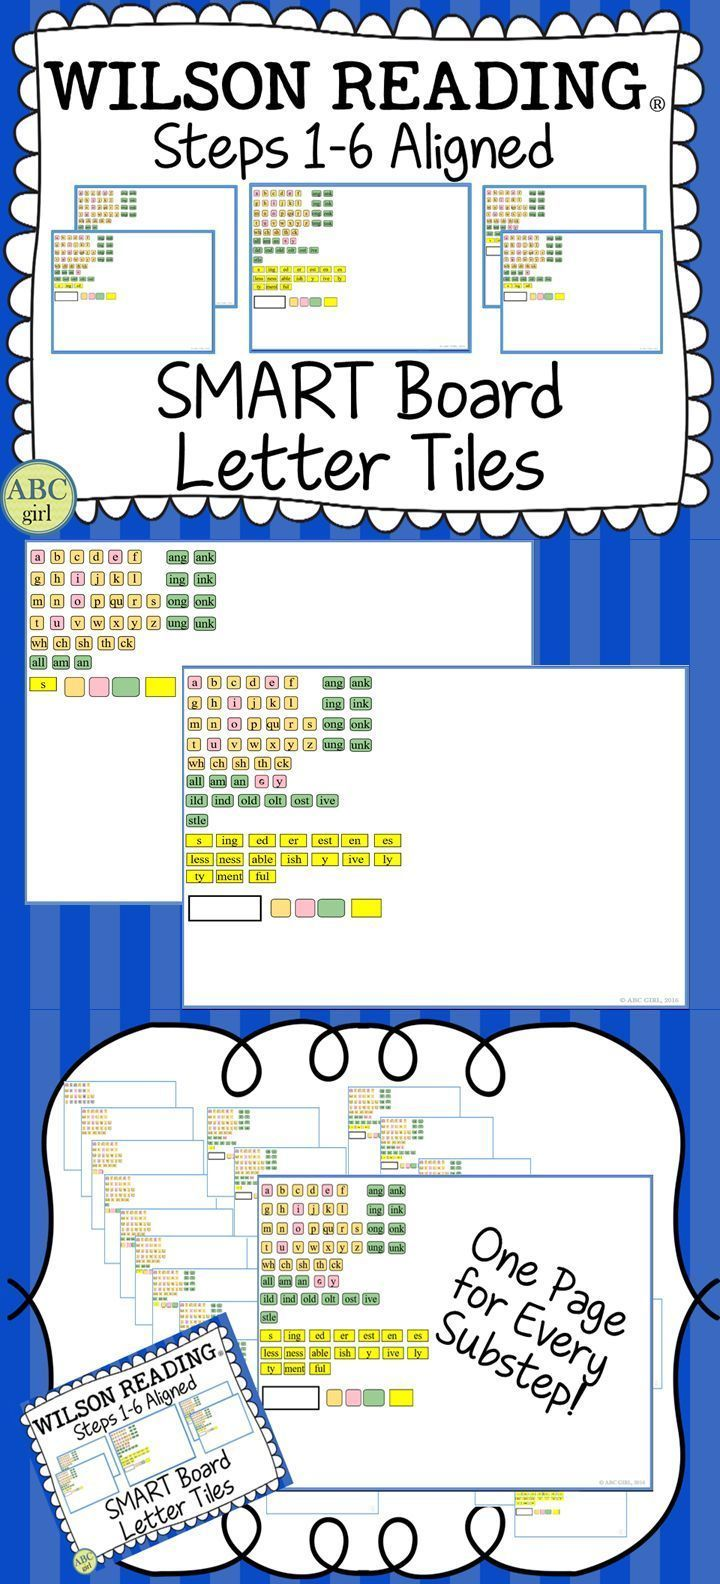 Worksheets Wilson Reading Worksheets 27 best wilson reading system images on pinterest learning school steps 1 6 aligned smart board letter tiles never run